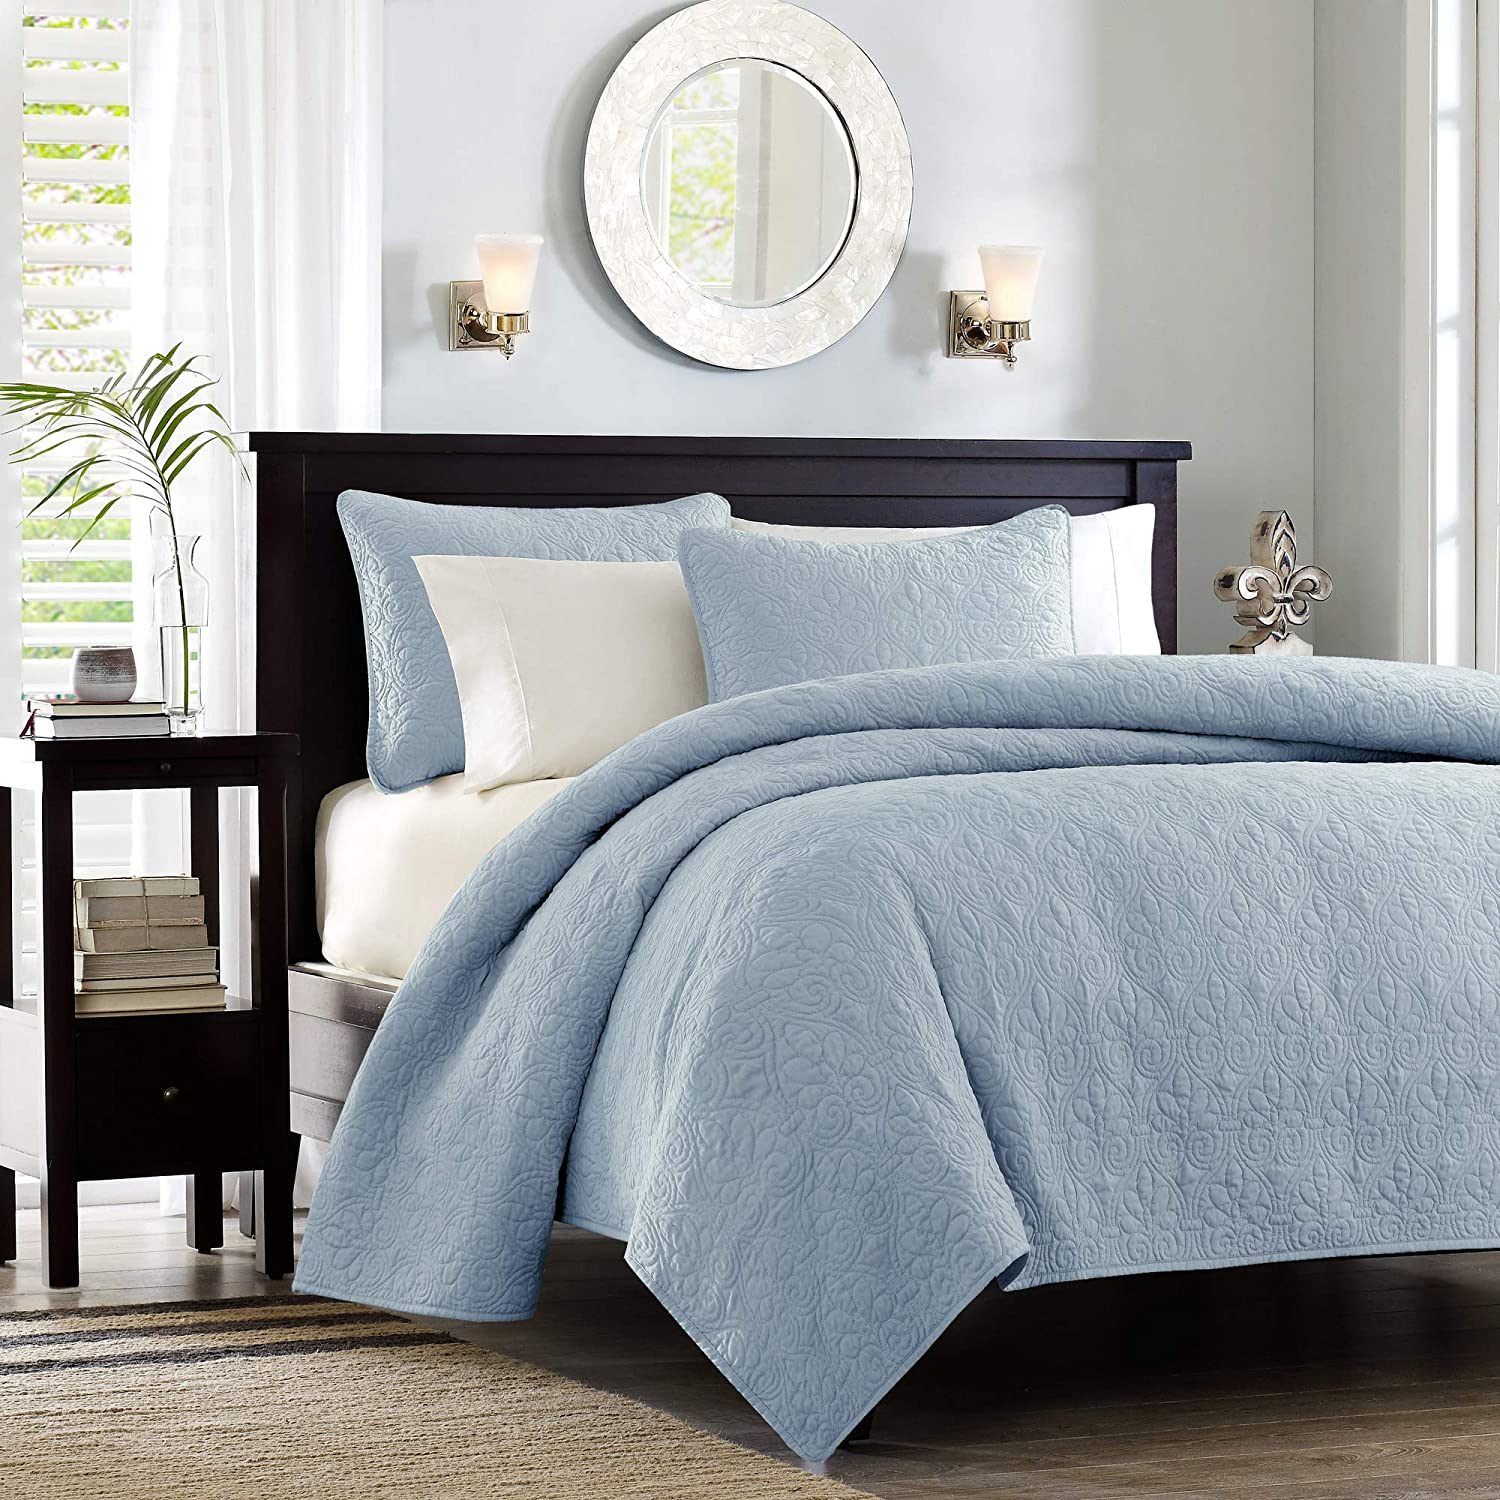 Madison Park Quebec Coverlet Mini Set, bluee, Twin Twin XL,